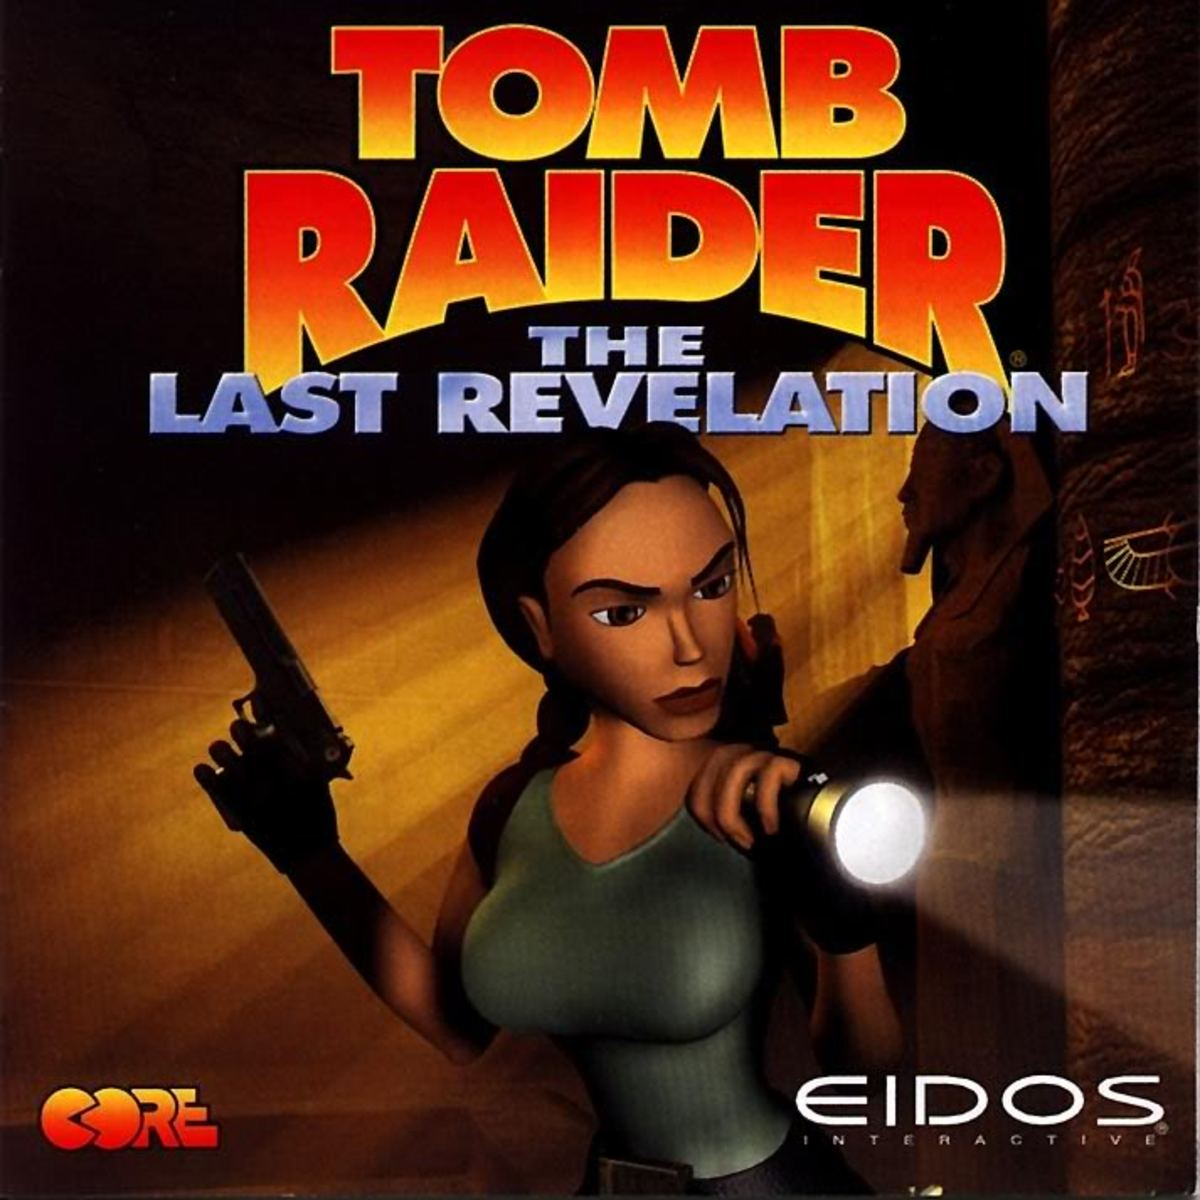 Tomb Raider 4 - The last revelation (1999)